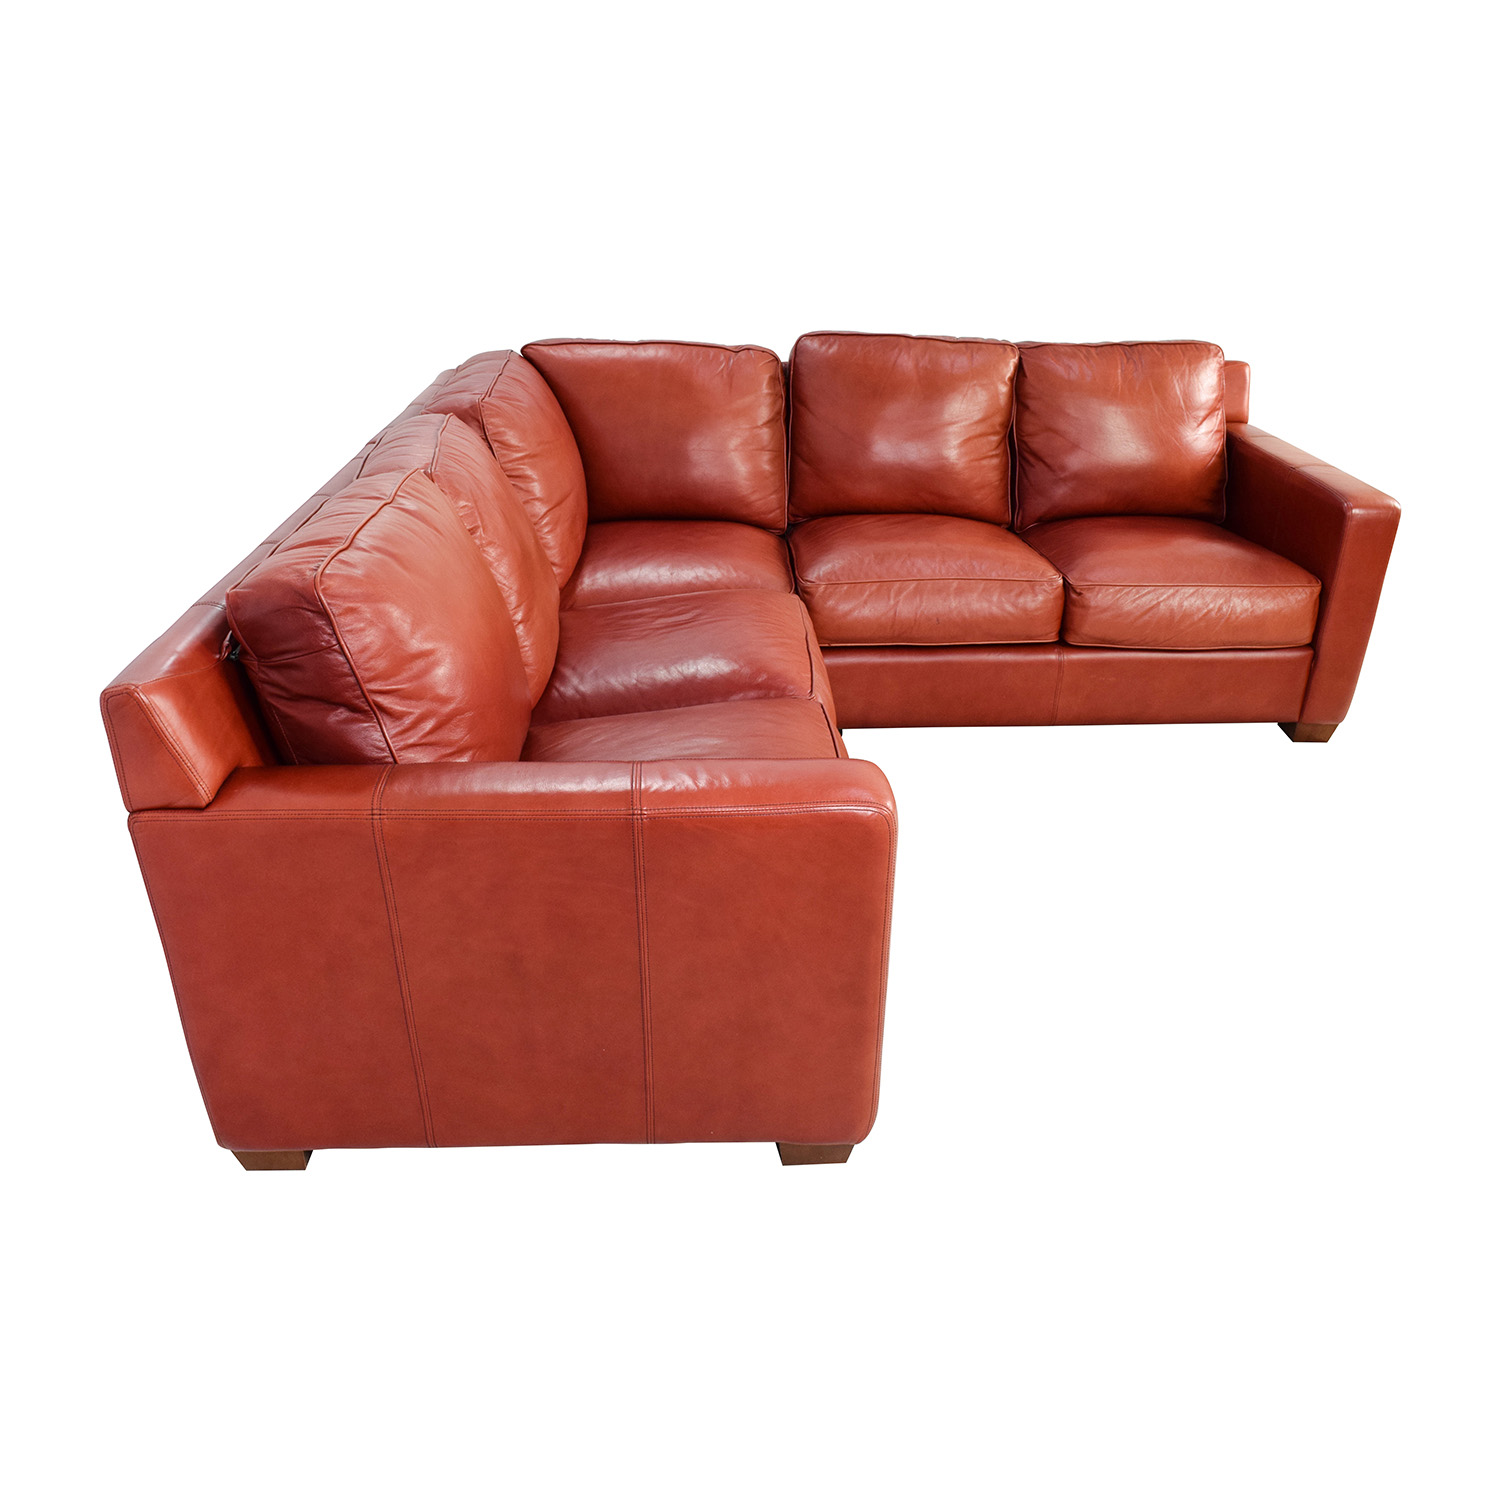 68 Off Thomasville Thomasville Red Leather Sectional